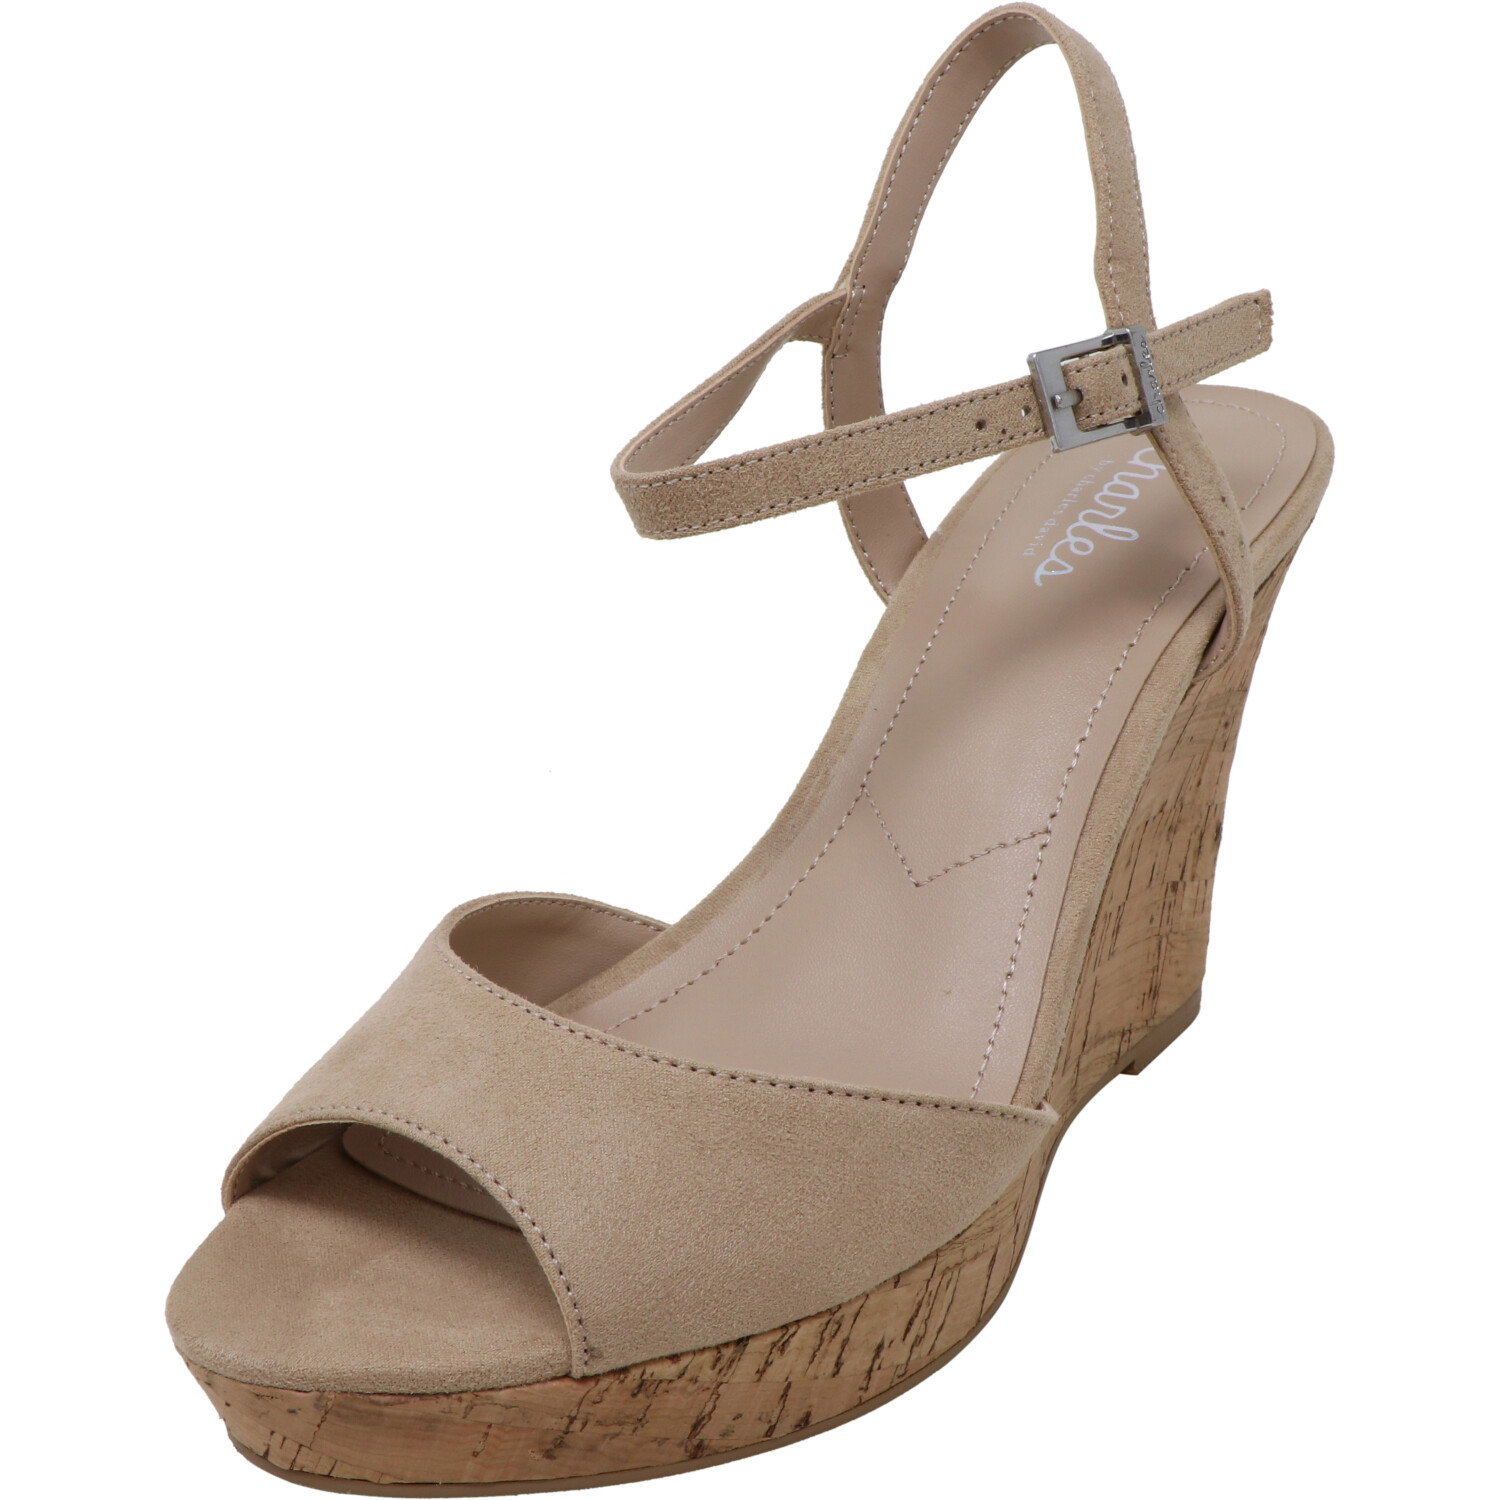 Charles By David Women's Lambert Microsuede Nude Ankle-High Suede Wedged Sandal - 10M